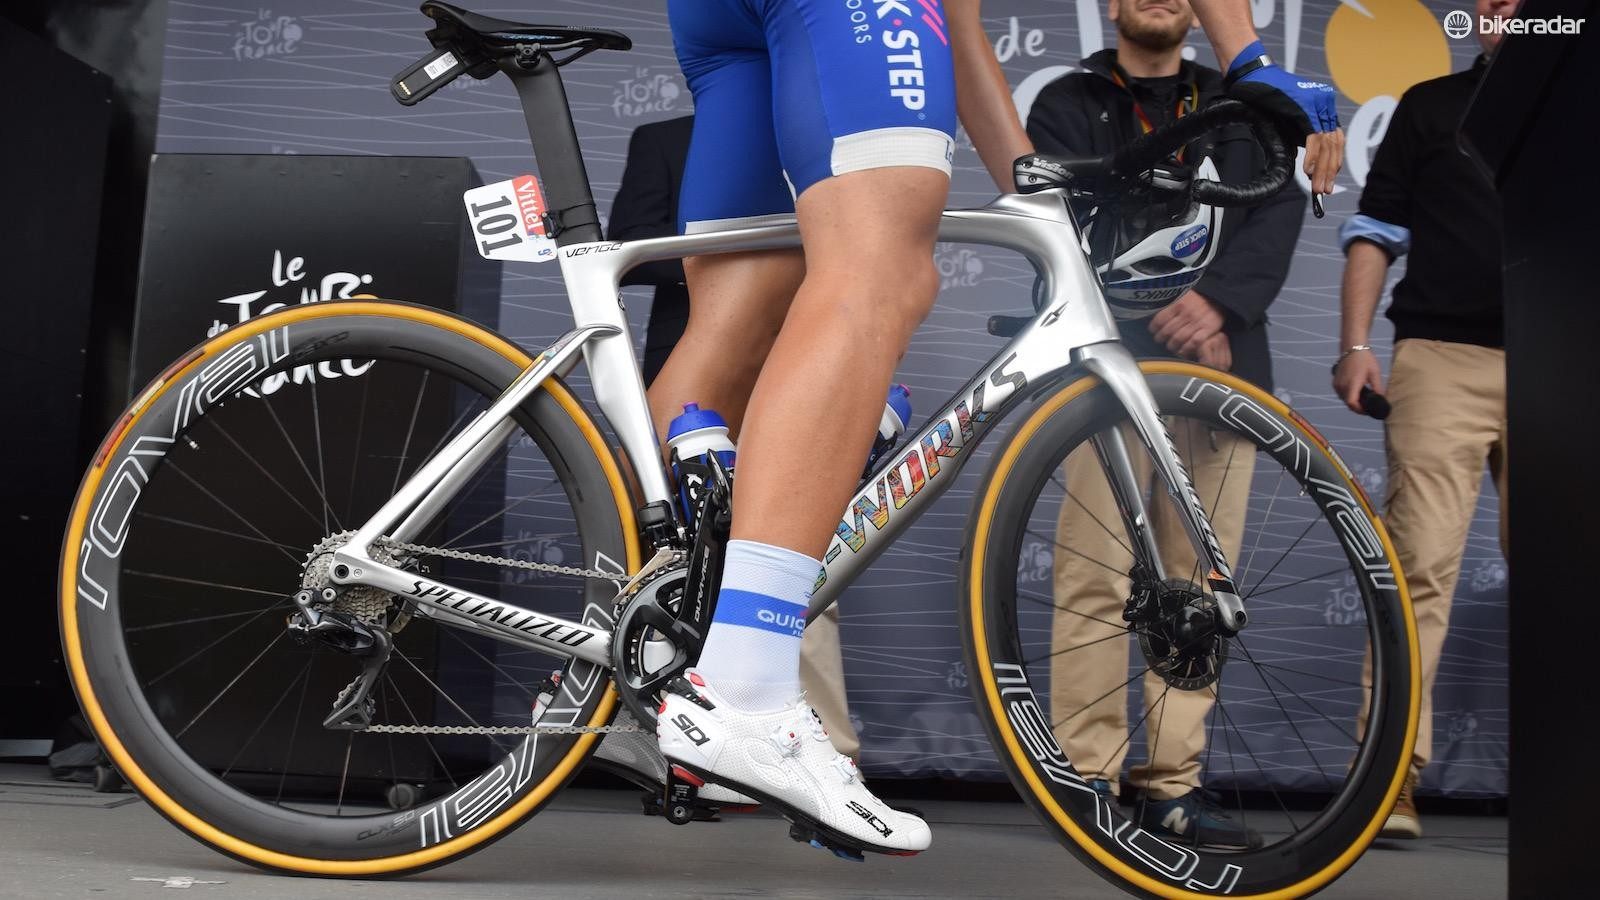 Marcel Kittel aboard his Venge Disc at the stage 2 sign on in Dusseldorf